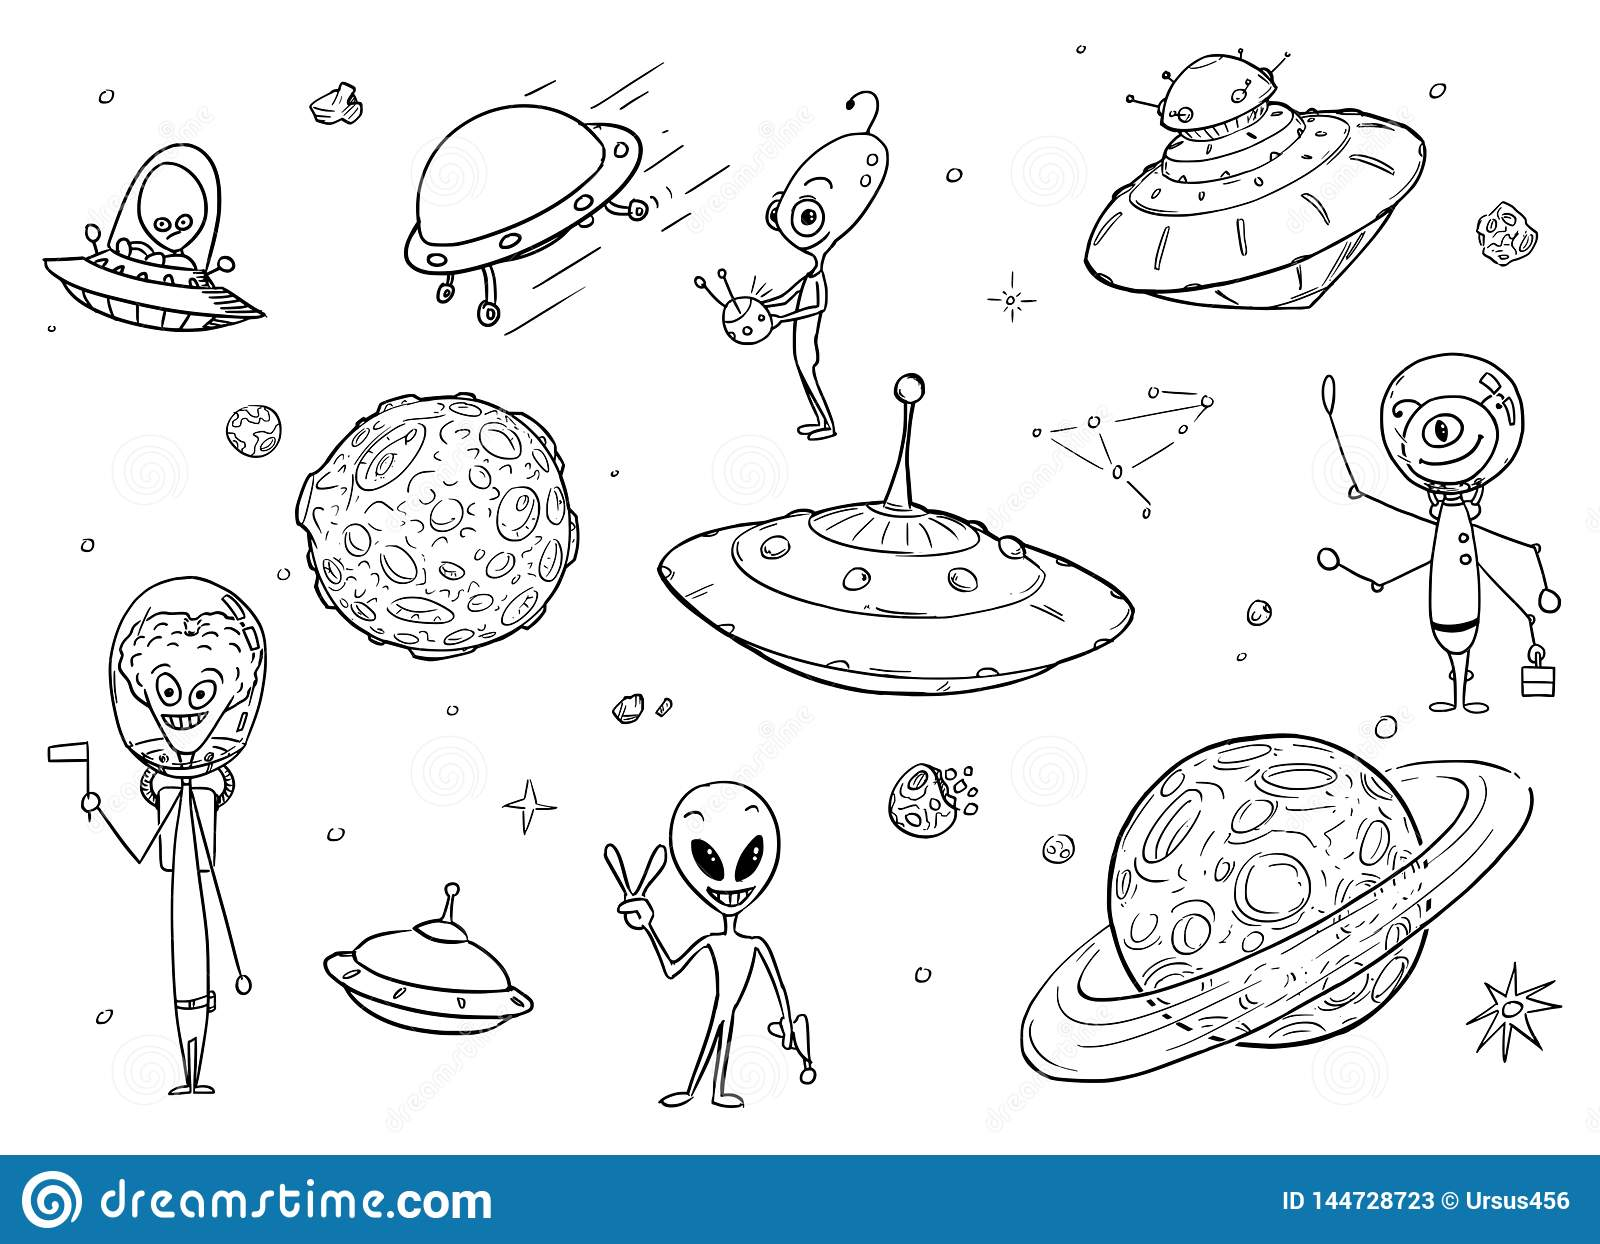 Set of cartoon vector drawings of friendly cartoon alien characters ufo space ships and planets